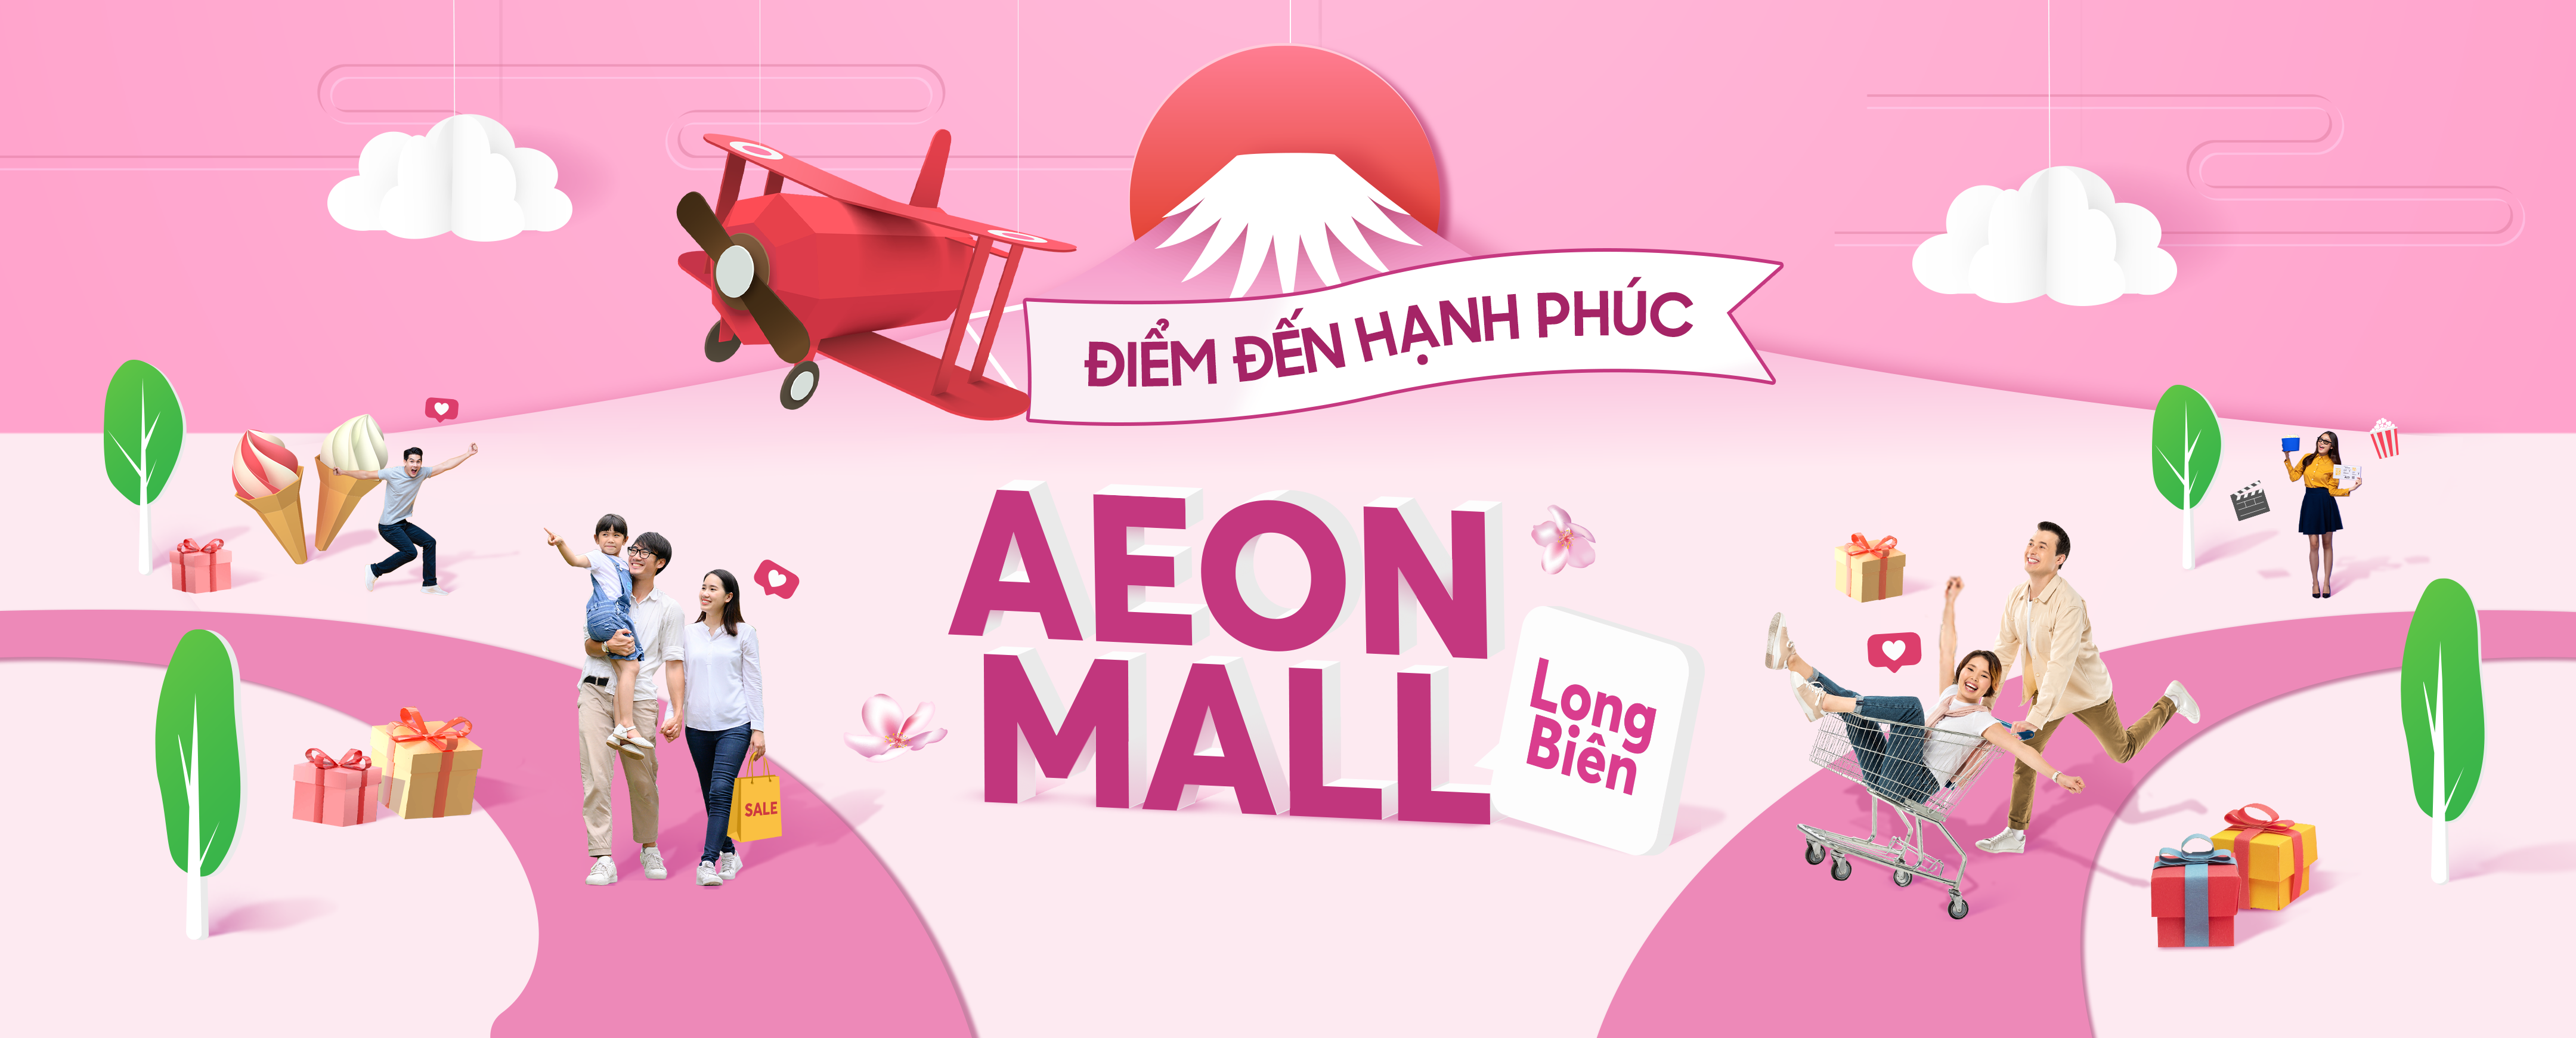 "LAUNCHING NEW KEY VISUAL ""THE HAPPY MALL"" OF AEON MALL LONG BIEN"